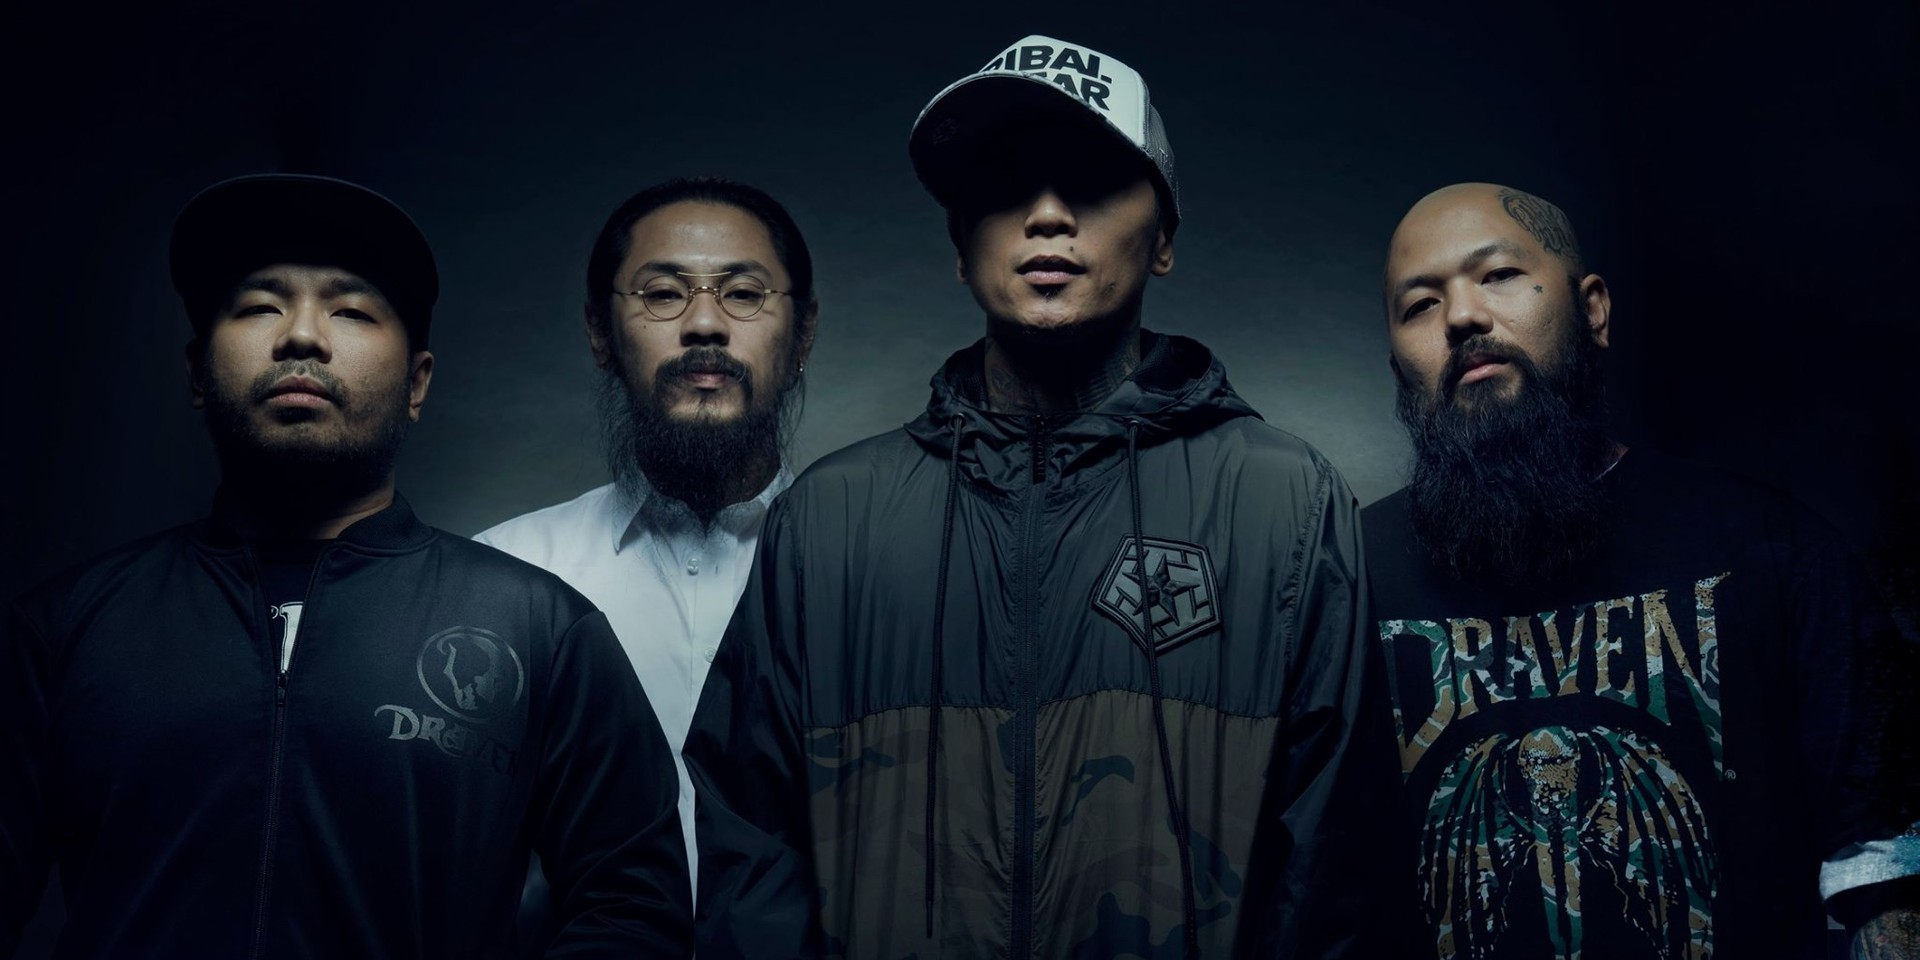 WilaBaliW to release new album Aurum this June